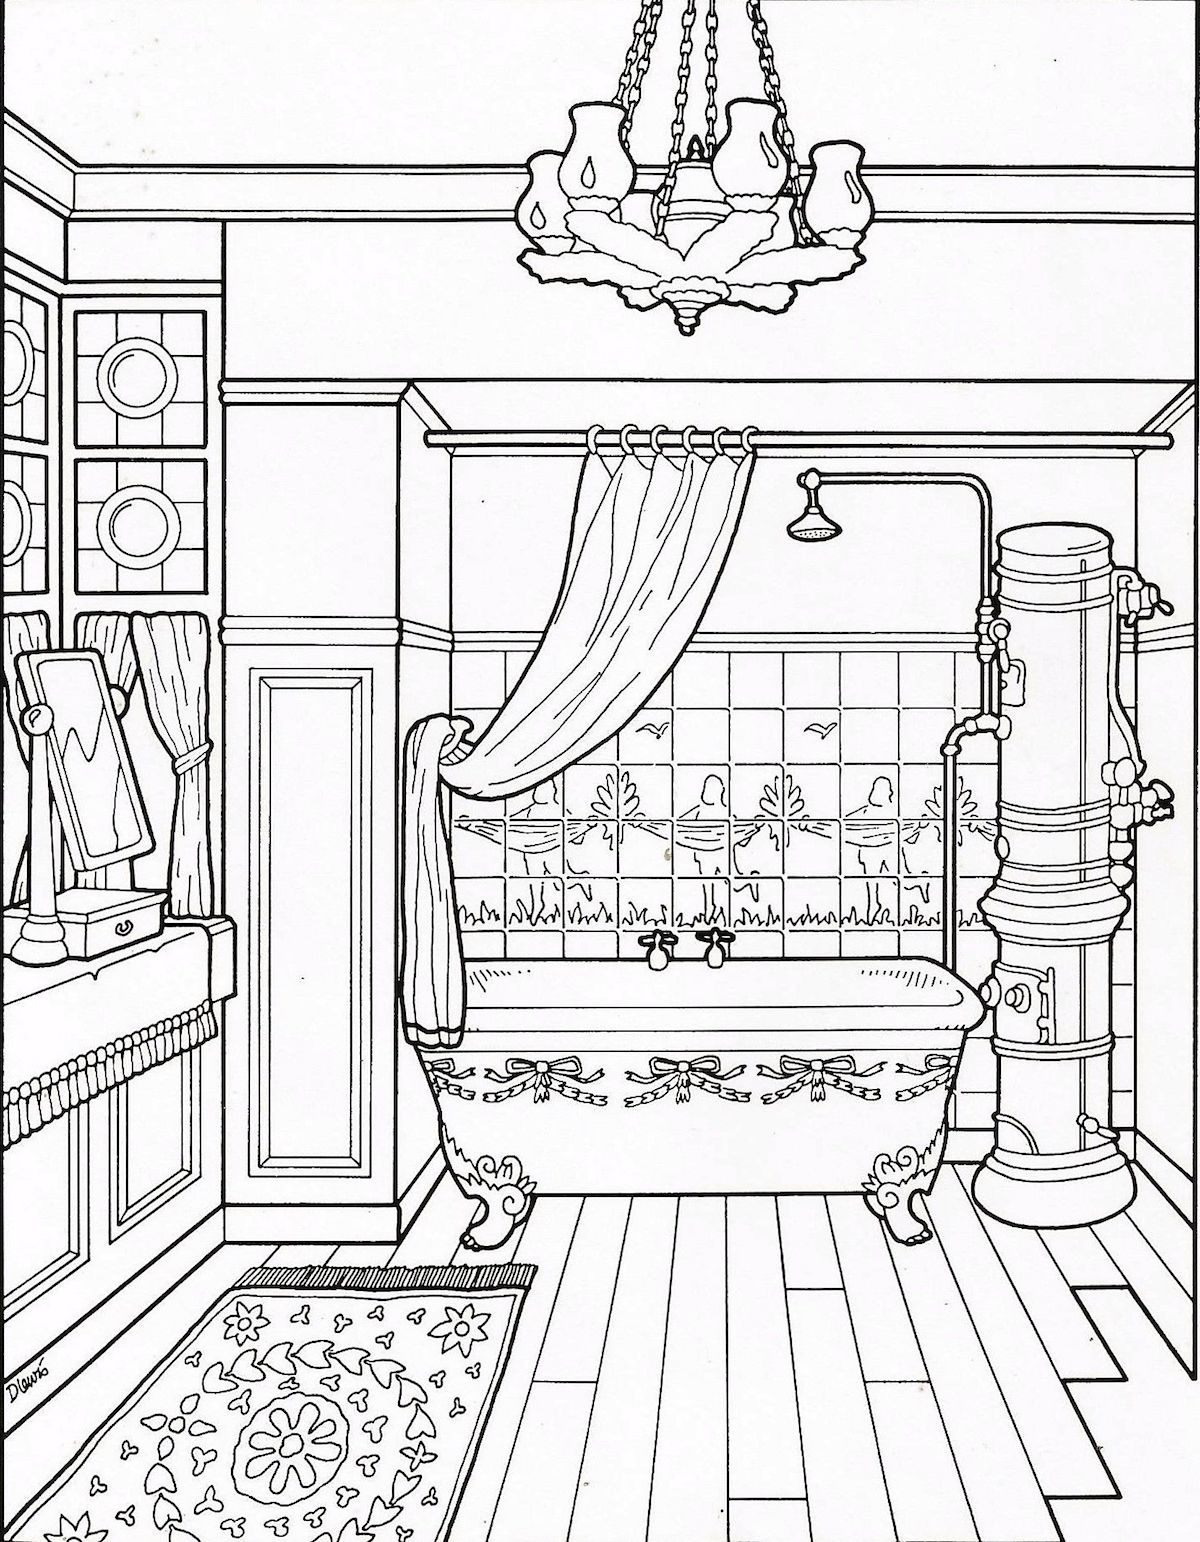 Interiors And Furniture Design Coloring Pages For Advanced